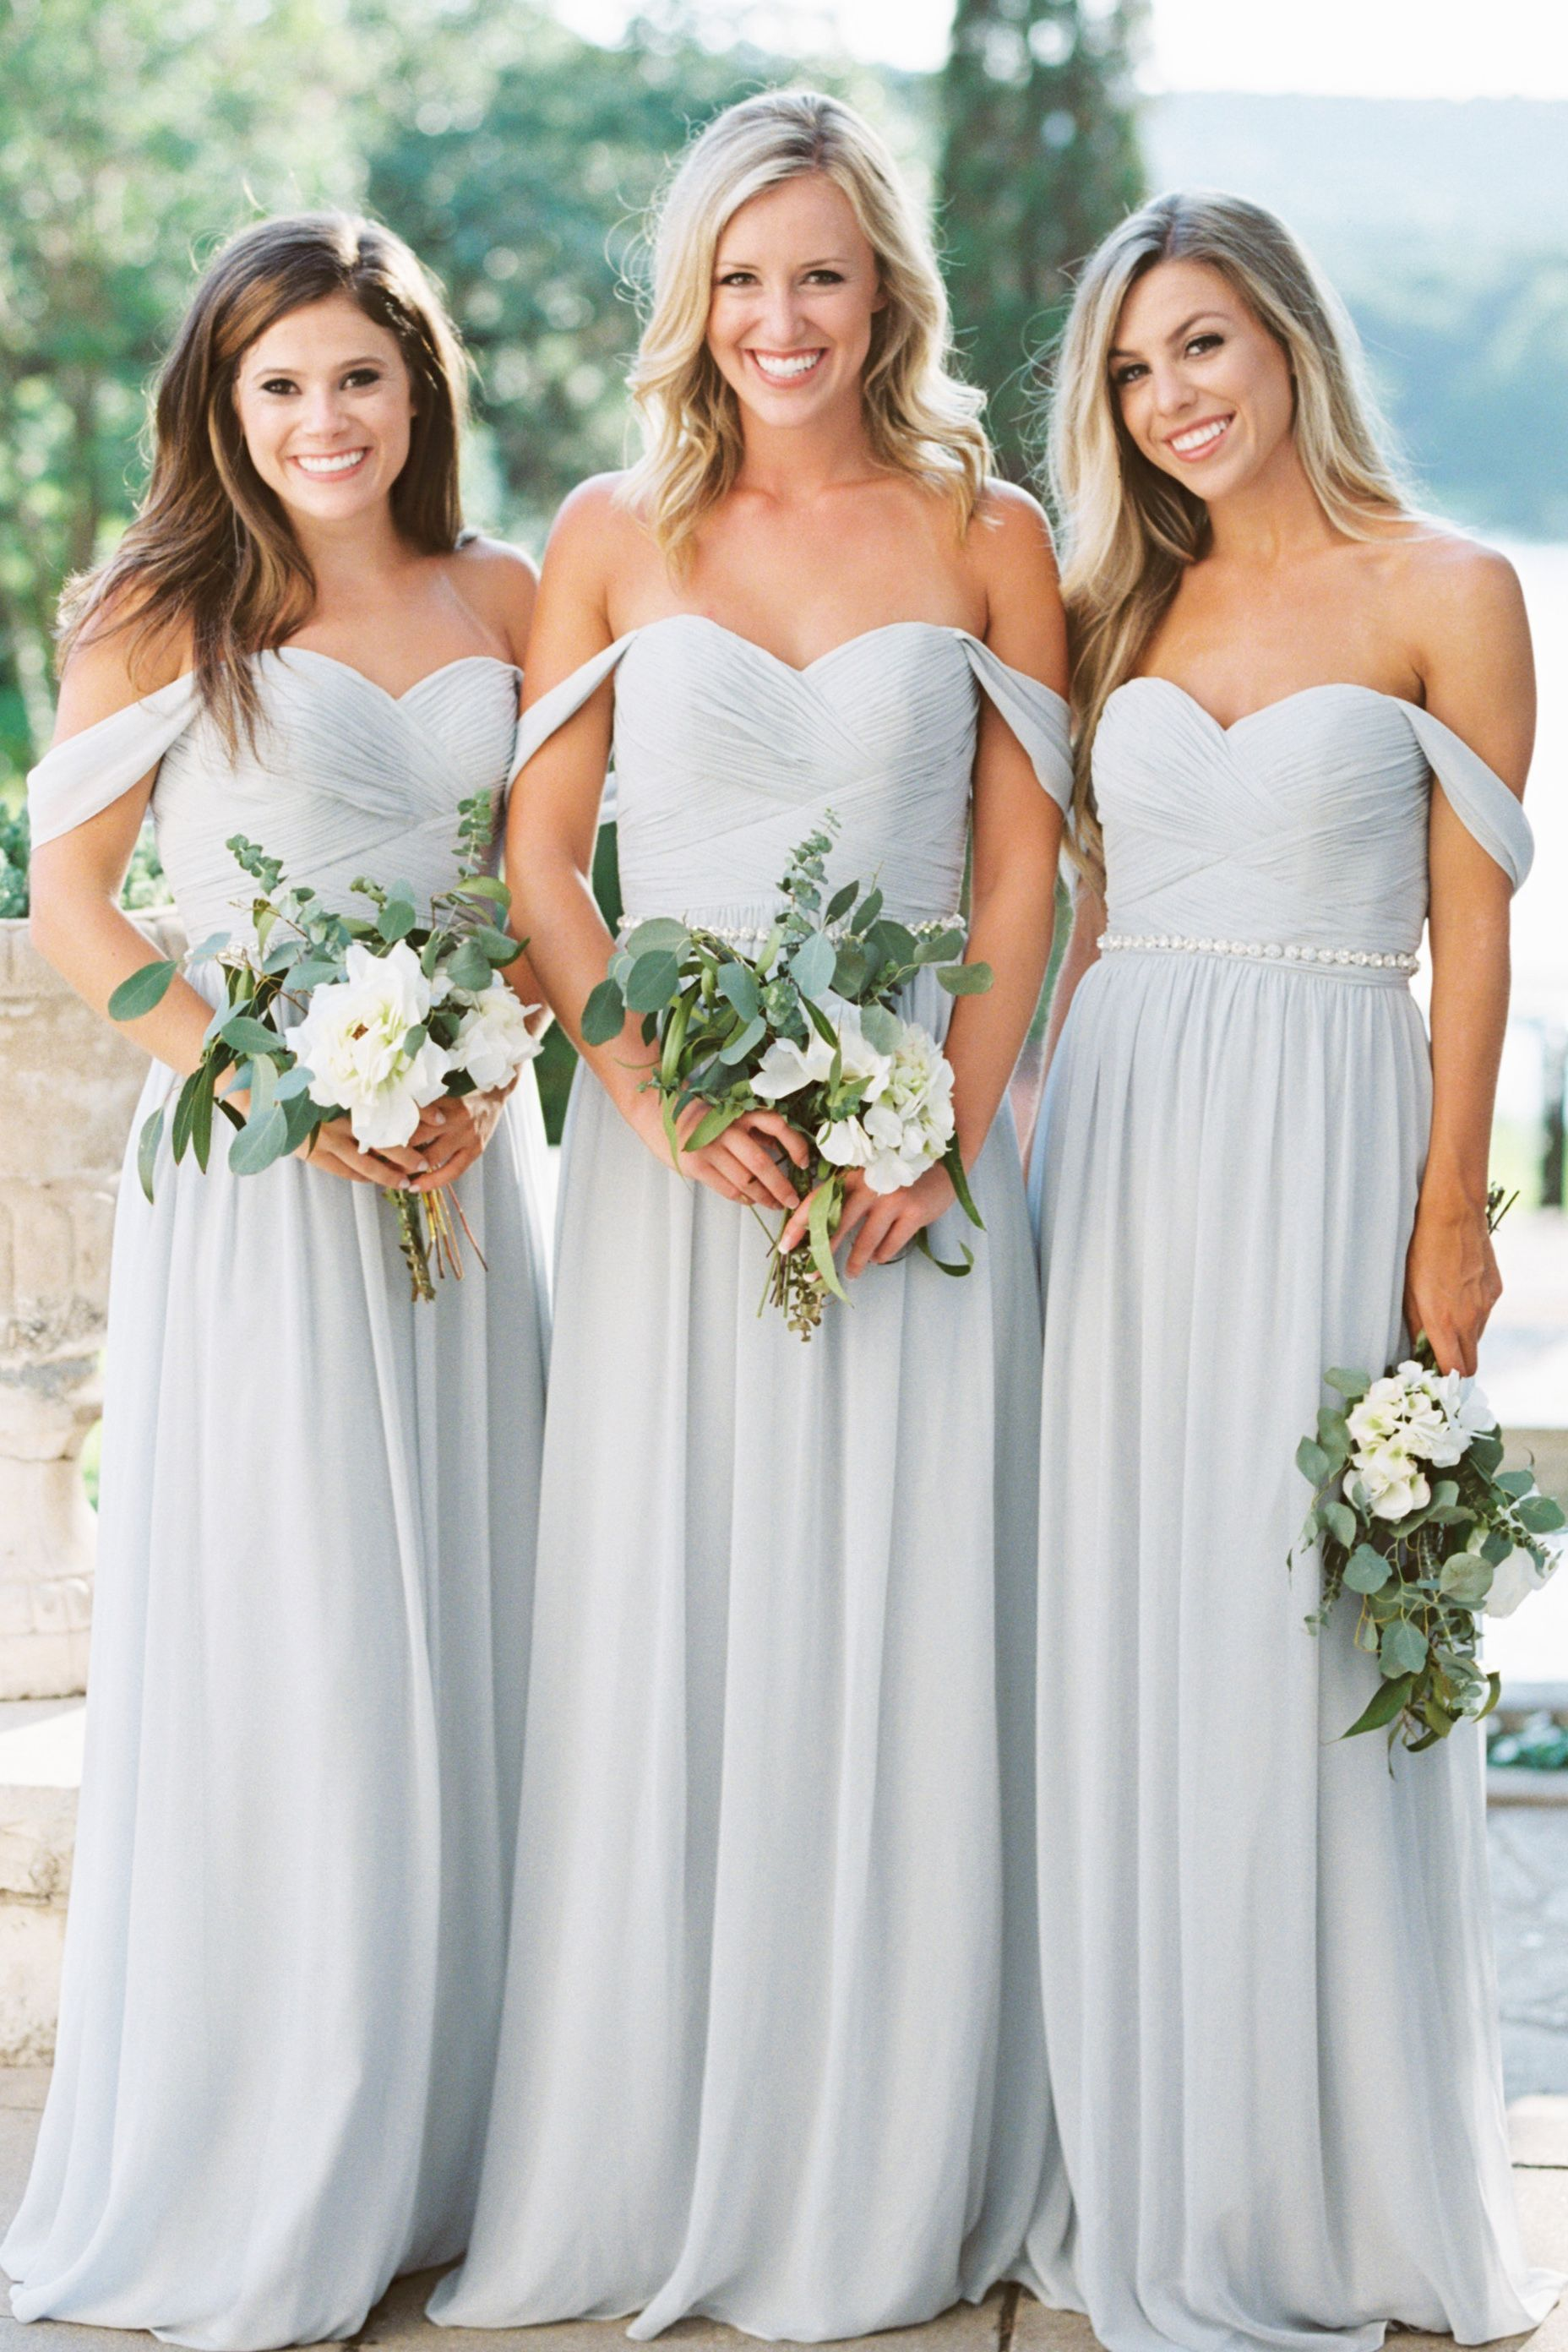 Bridesmaid Dresses And Separates From The Leading Ecommerce Bridesmaid Pale Blue Bridesmaid Dresses Off Shoulder Bridesmaid Dress Maternity Bridesmaid Dresses